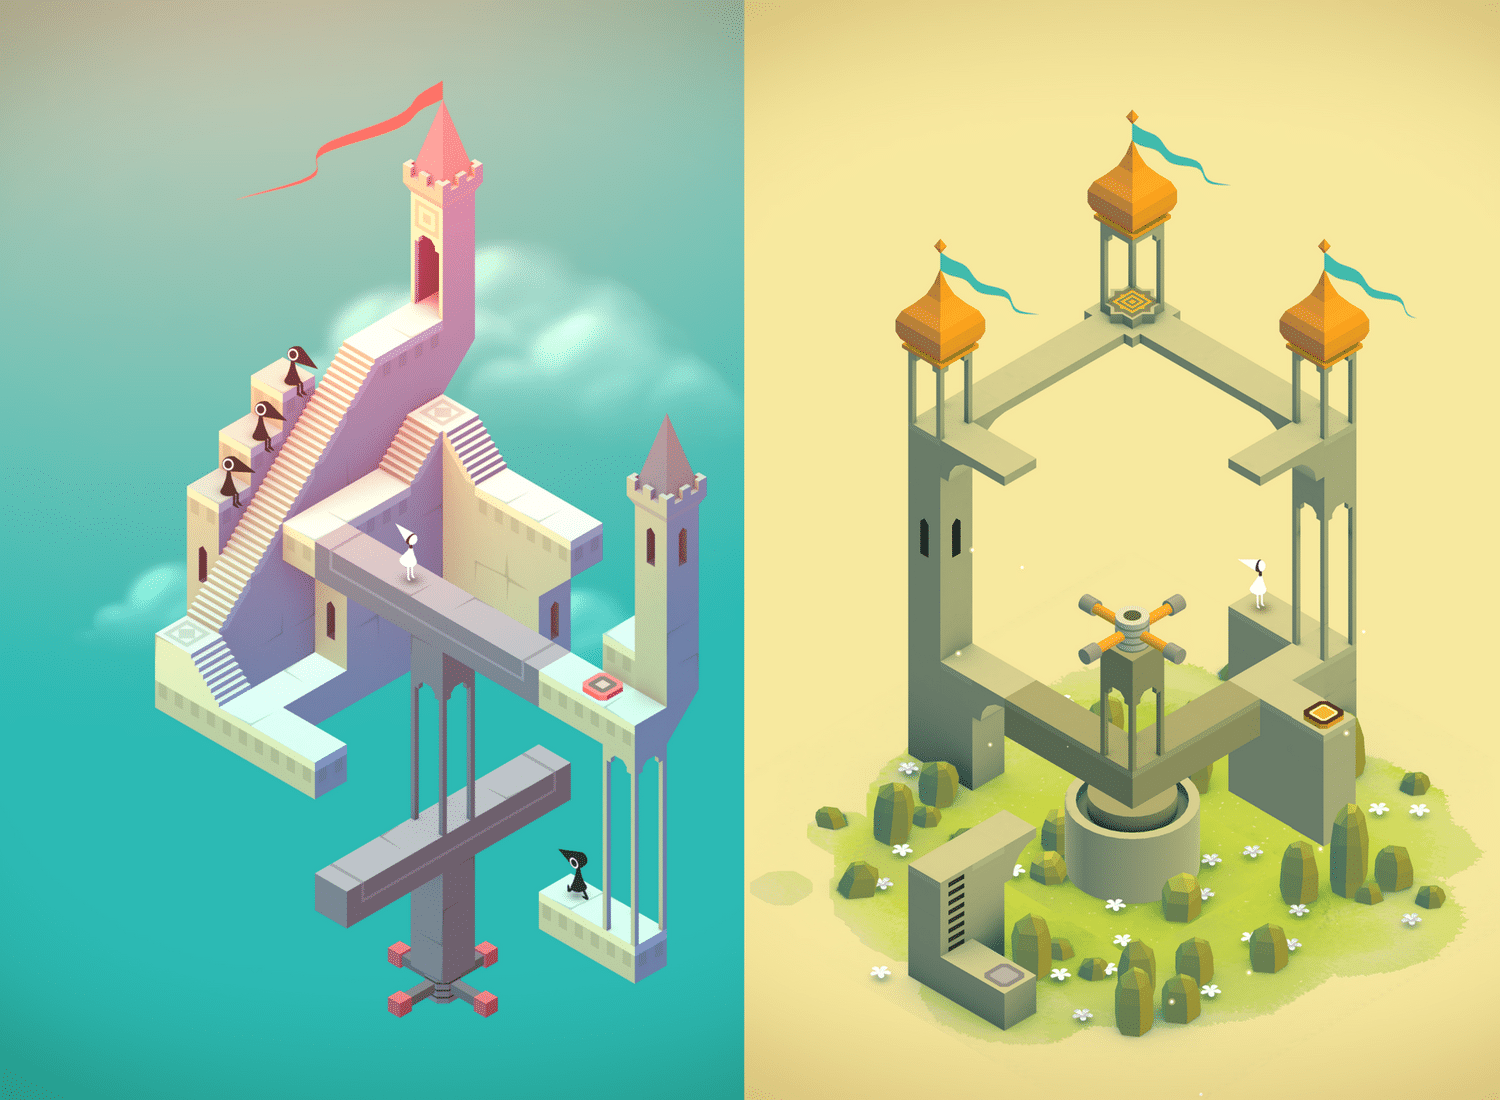 Les géométries impossibles et colorées de Monument Valley